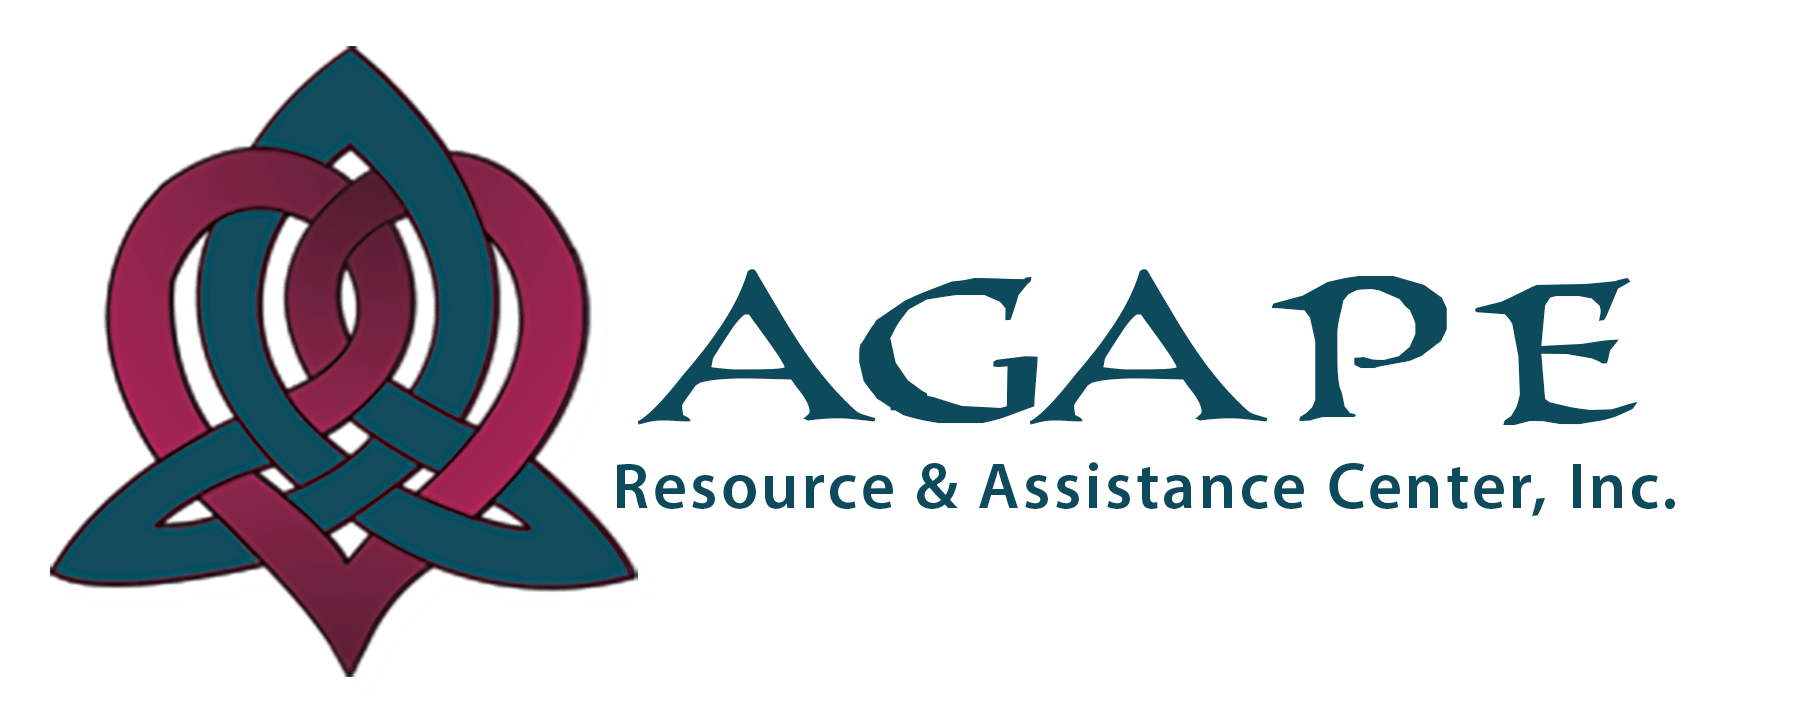 AGAPE - Resource & Assistance Center